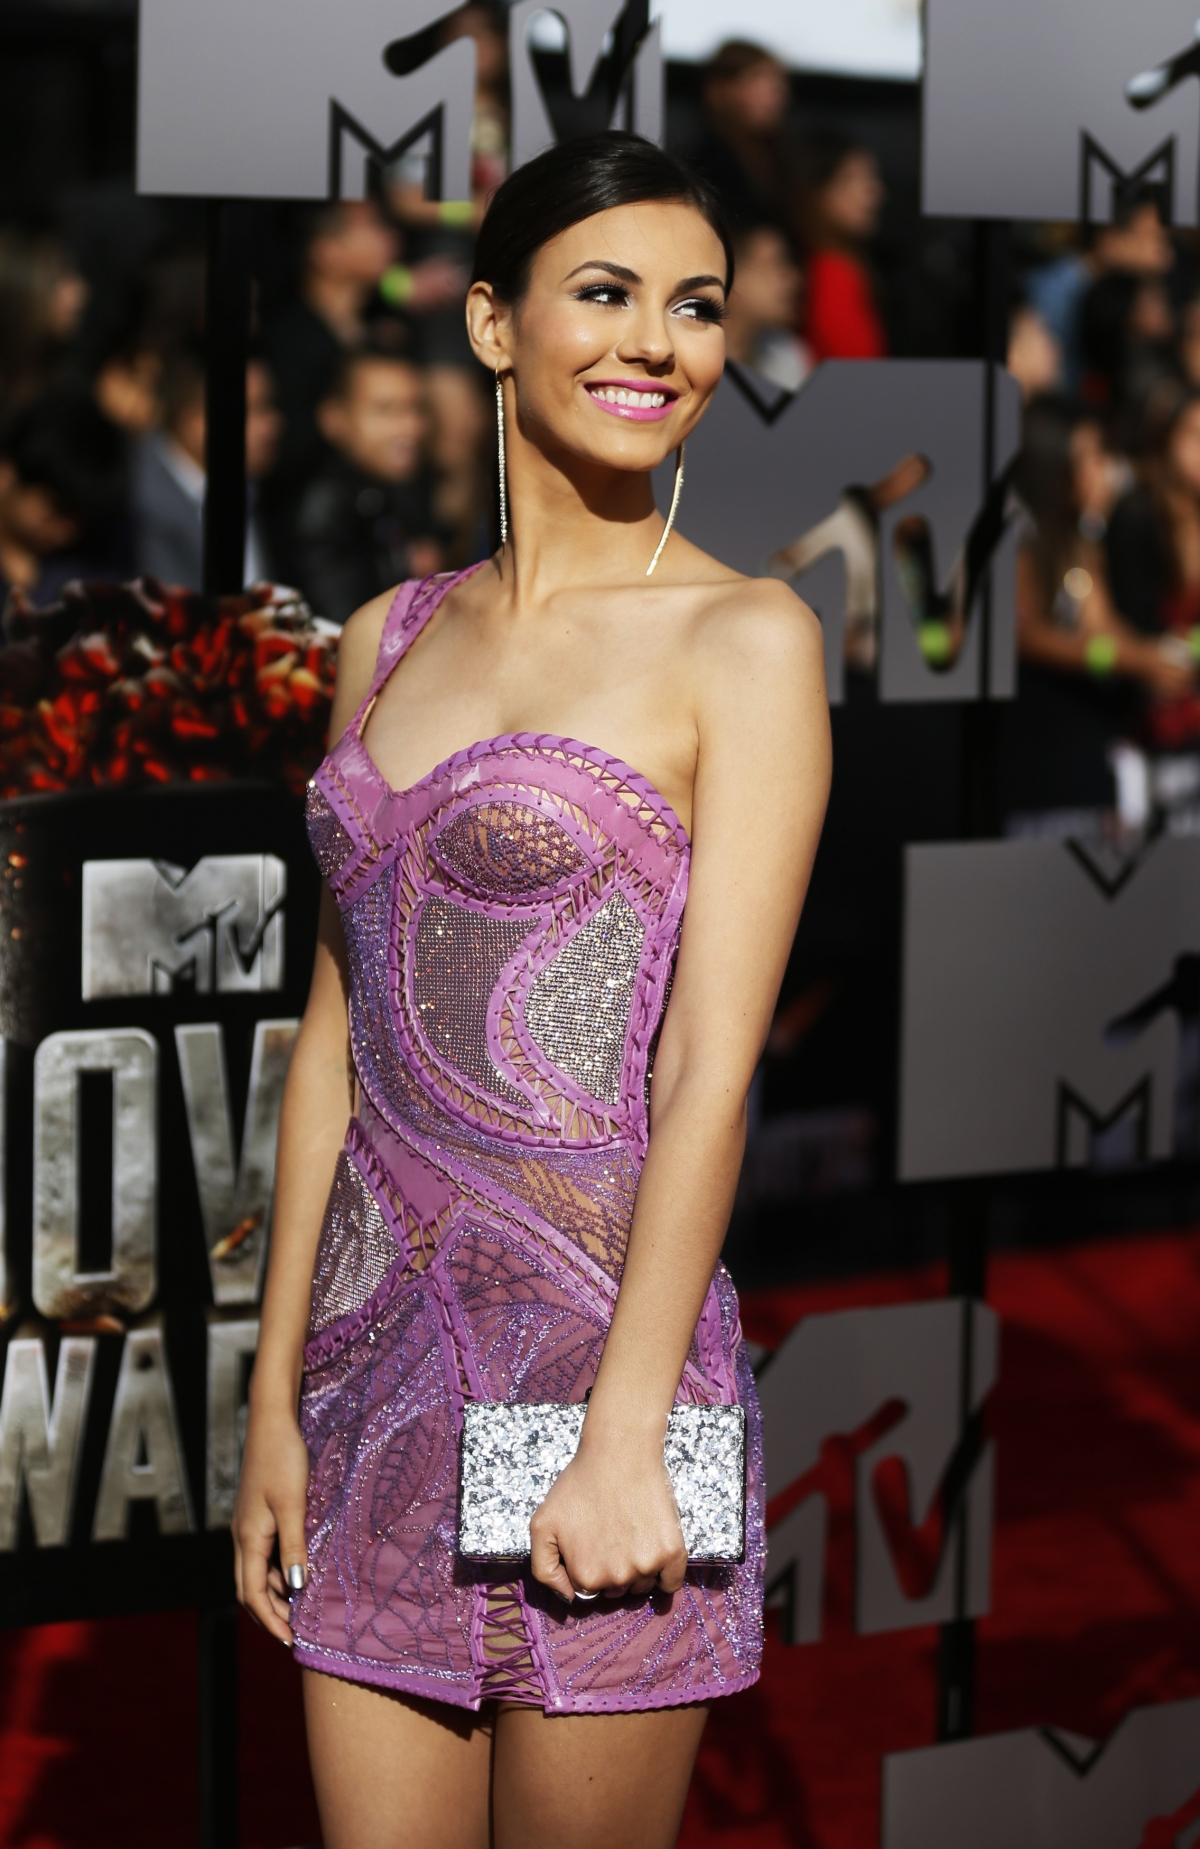 Actress Victoria Justice arrives at the 2014 MTV Movie Awards in Los Angeles, California.